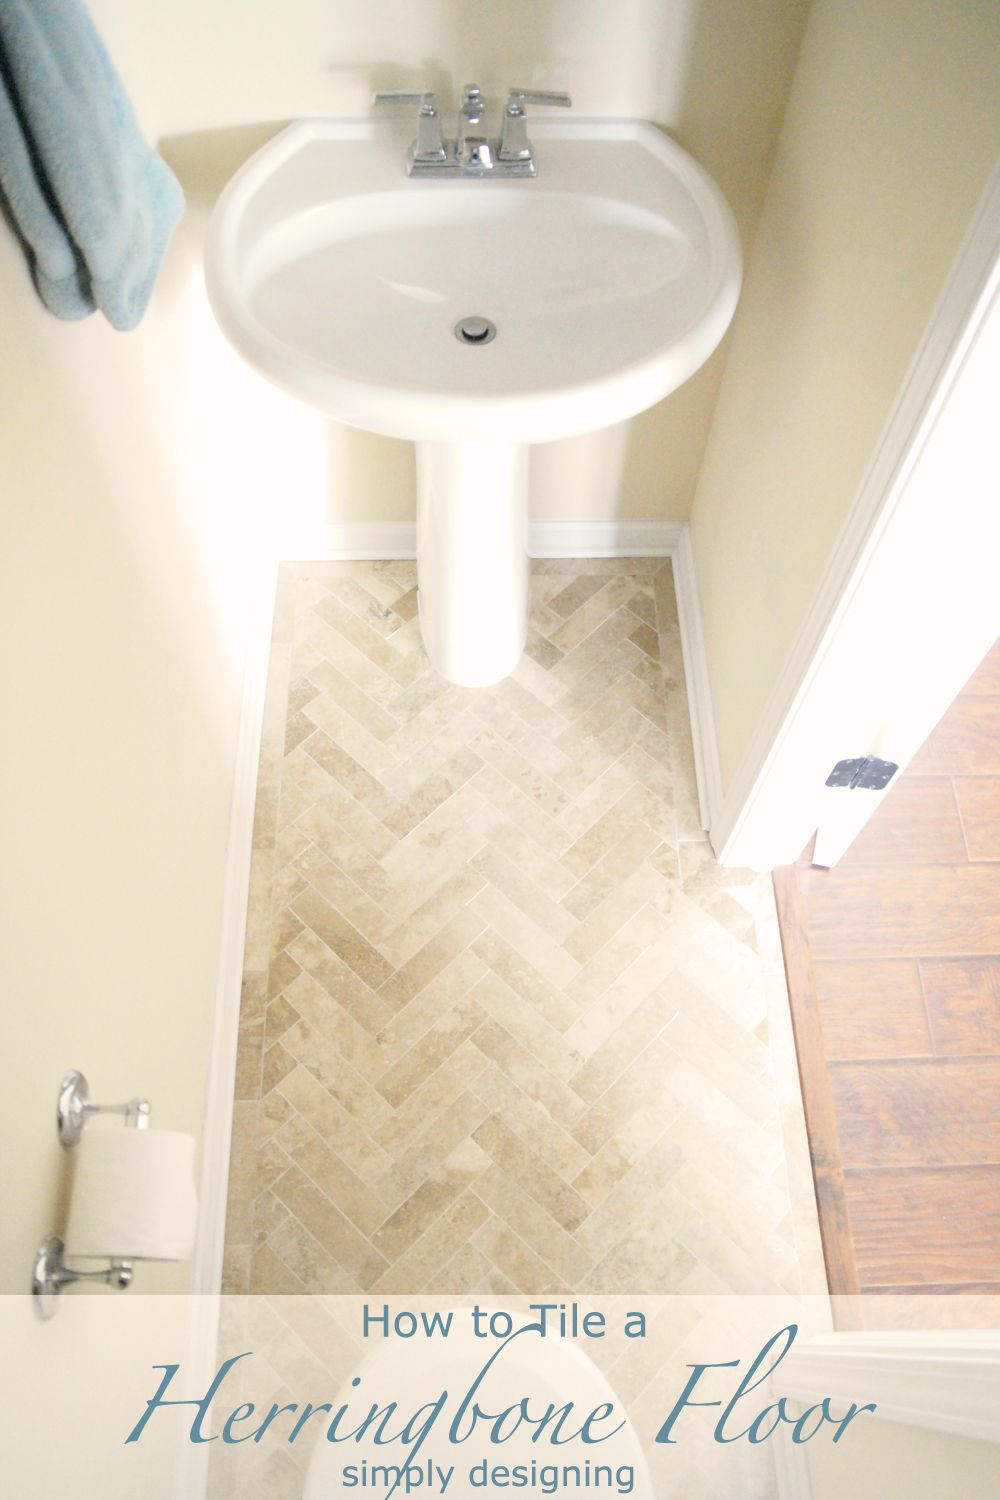 Herringbone tile floor how to prep lay and install herringbone how to install herringbone tile floors a complete tutorial for laying tile flooring and herringbone dailygadgetfo Image collections